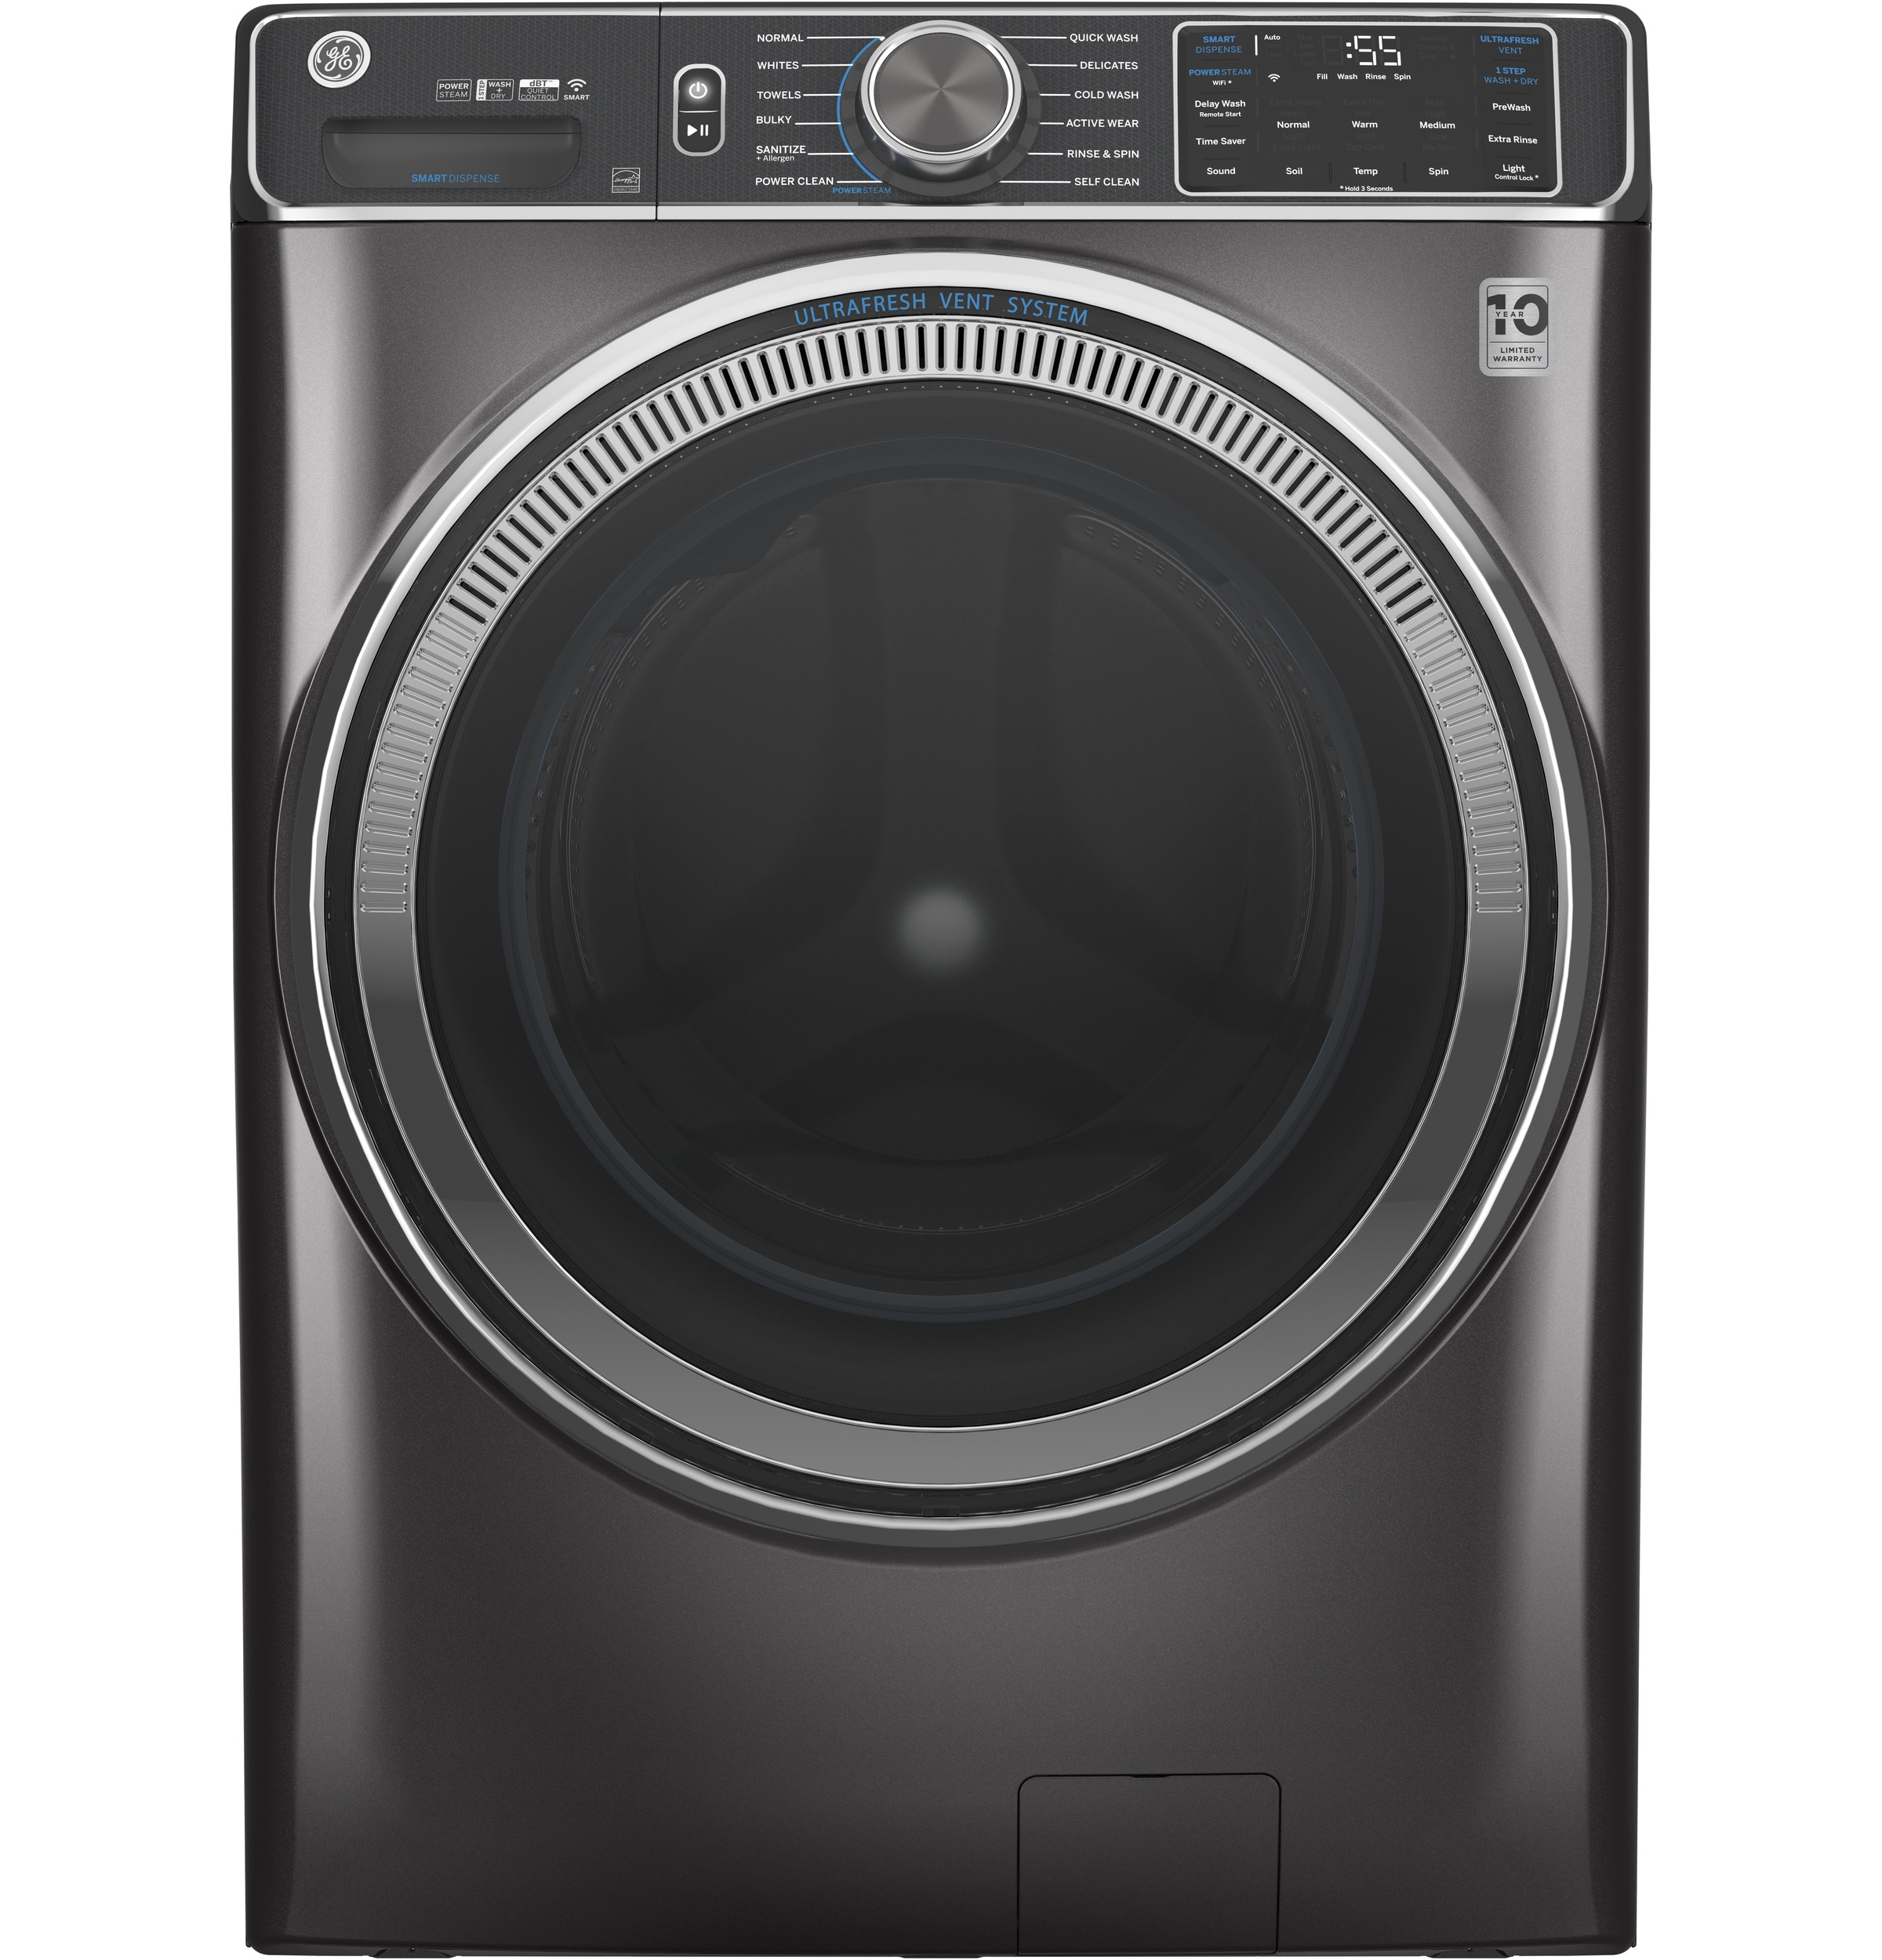 GE GE® 5.0 cu. ft. Capacity Smart Front Load ENERGY STAR® Steam Washer with SmartDispense™ UltraFresh Vent System with OdorBlock™ and Sanitize + Allergen